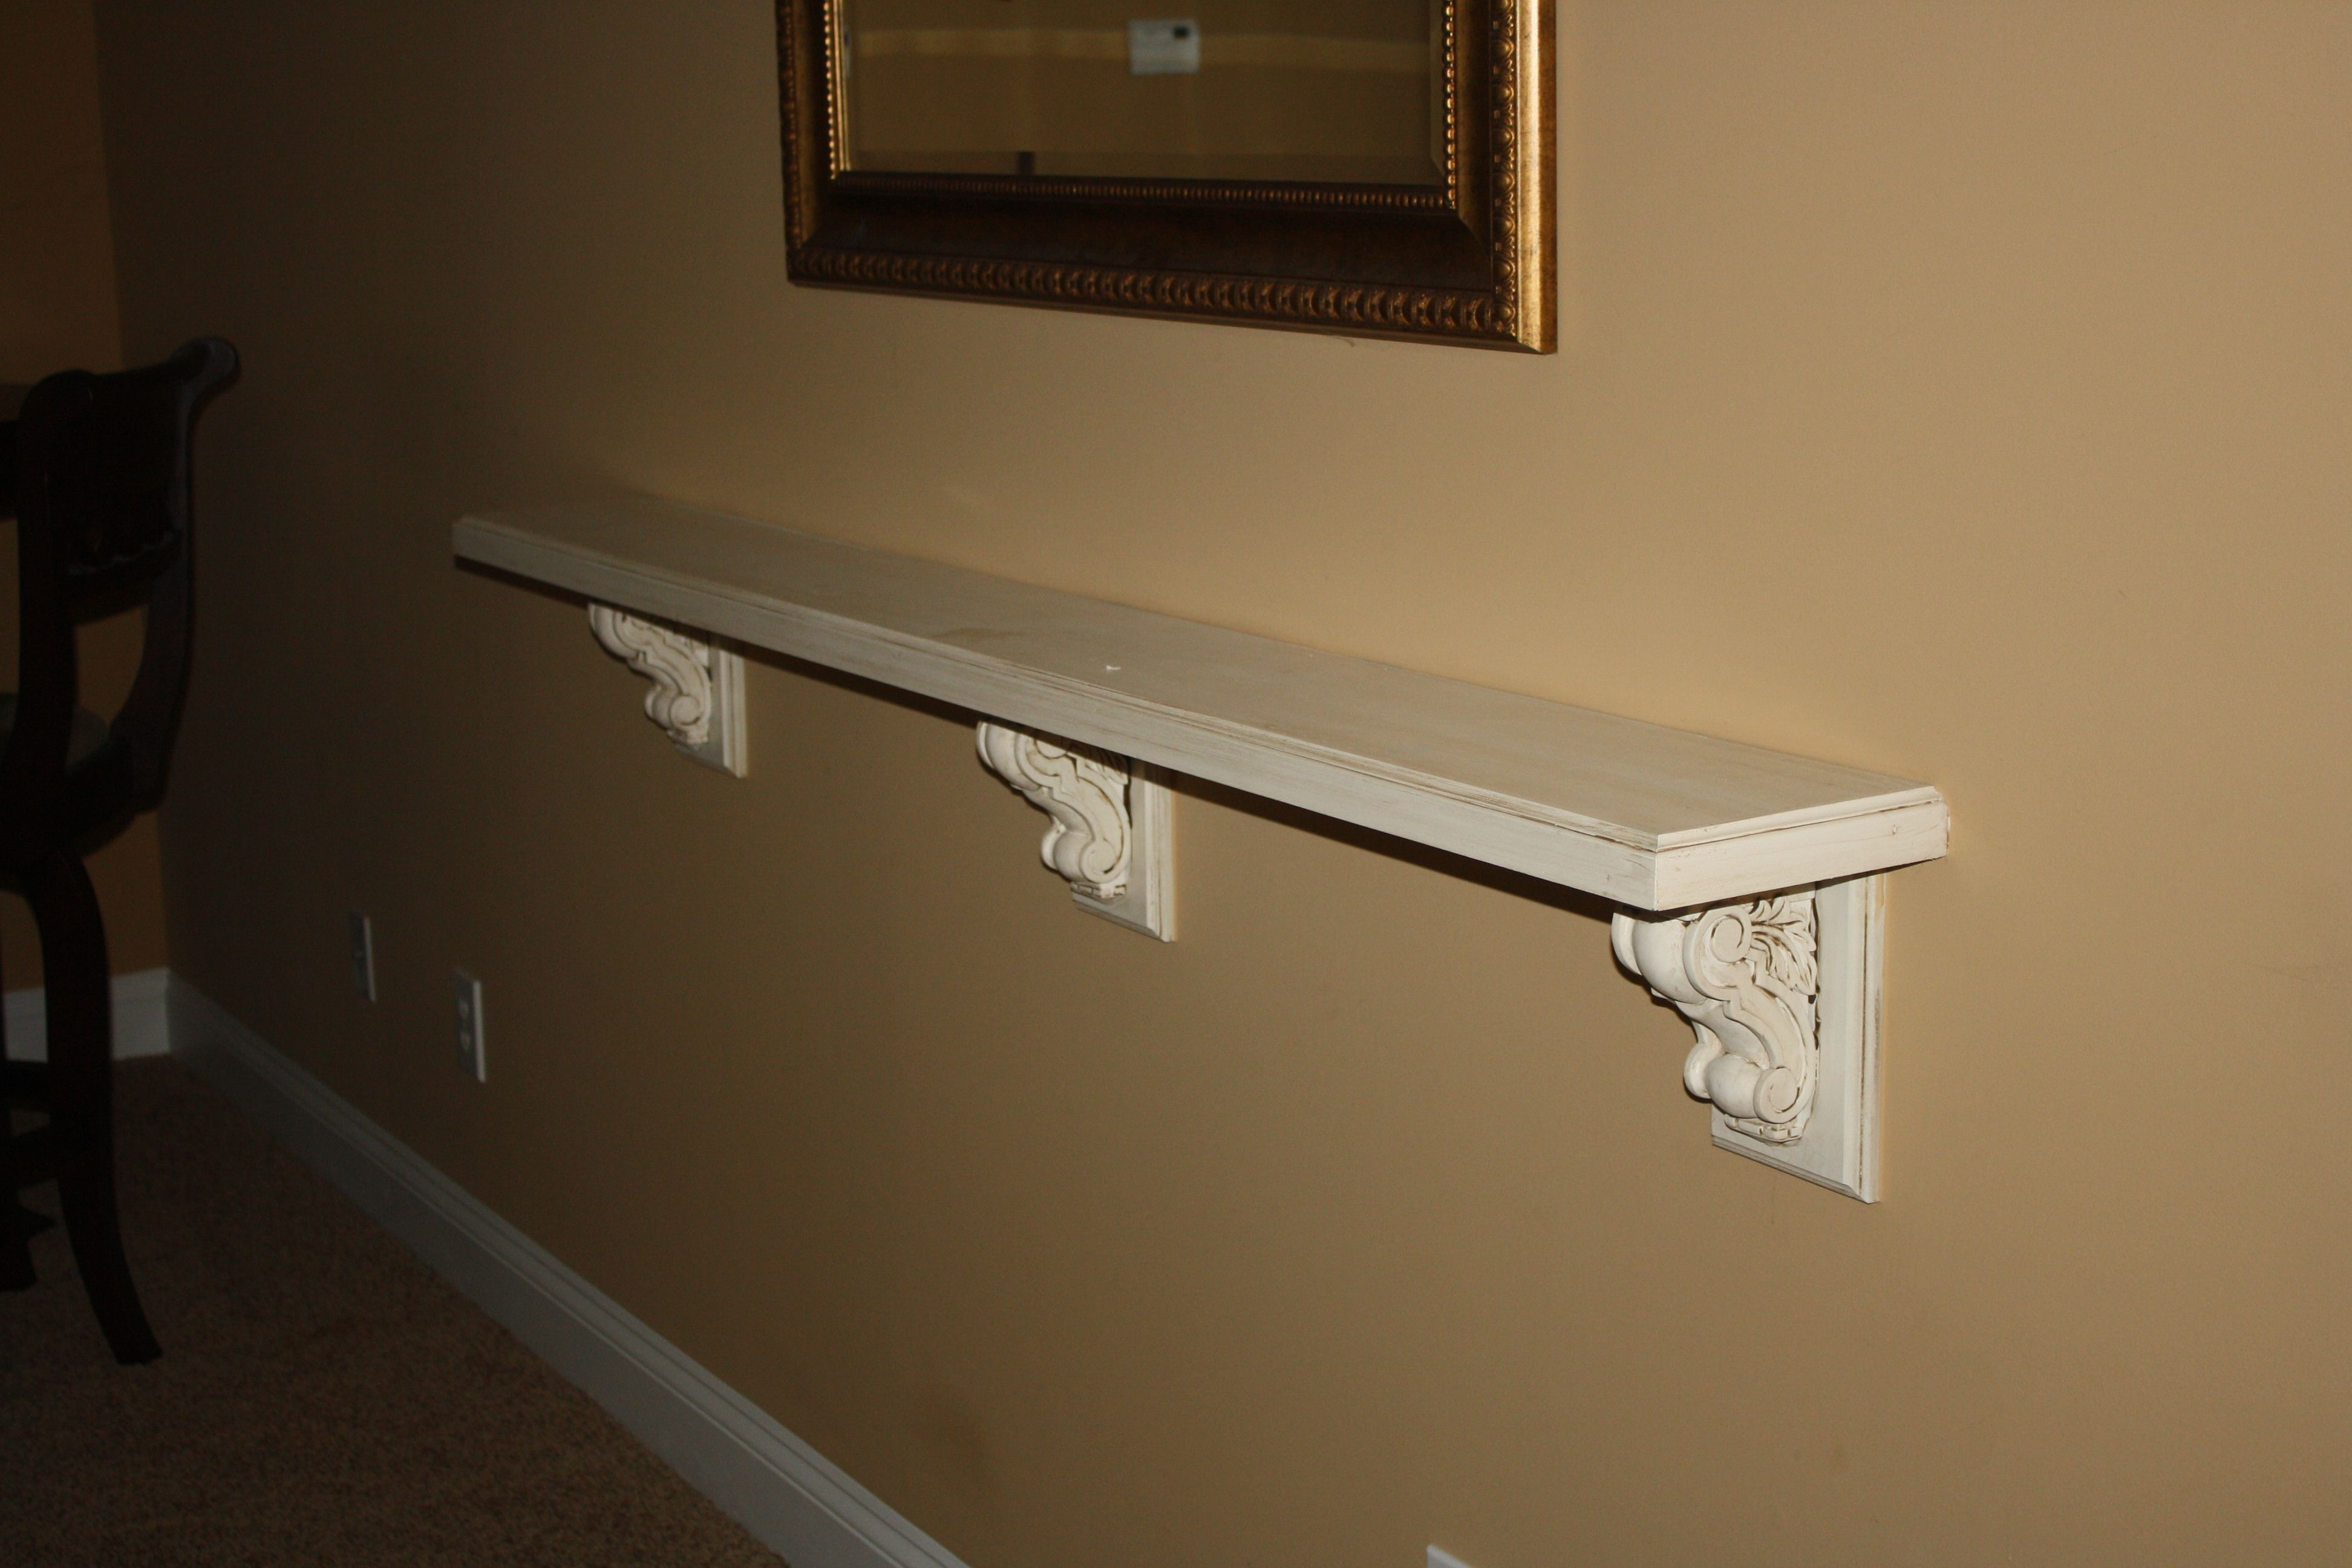 Drink Ledge Trim Bars For Home Hallway Decorating